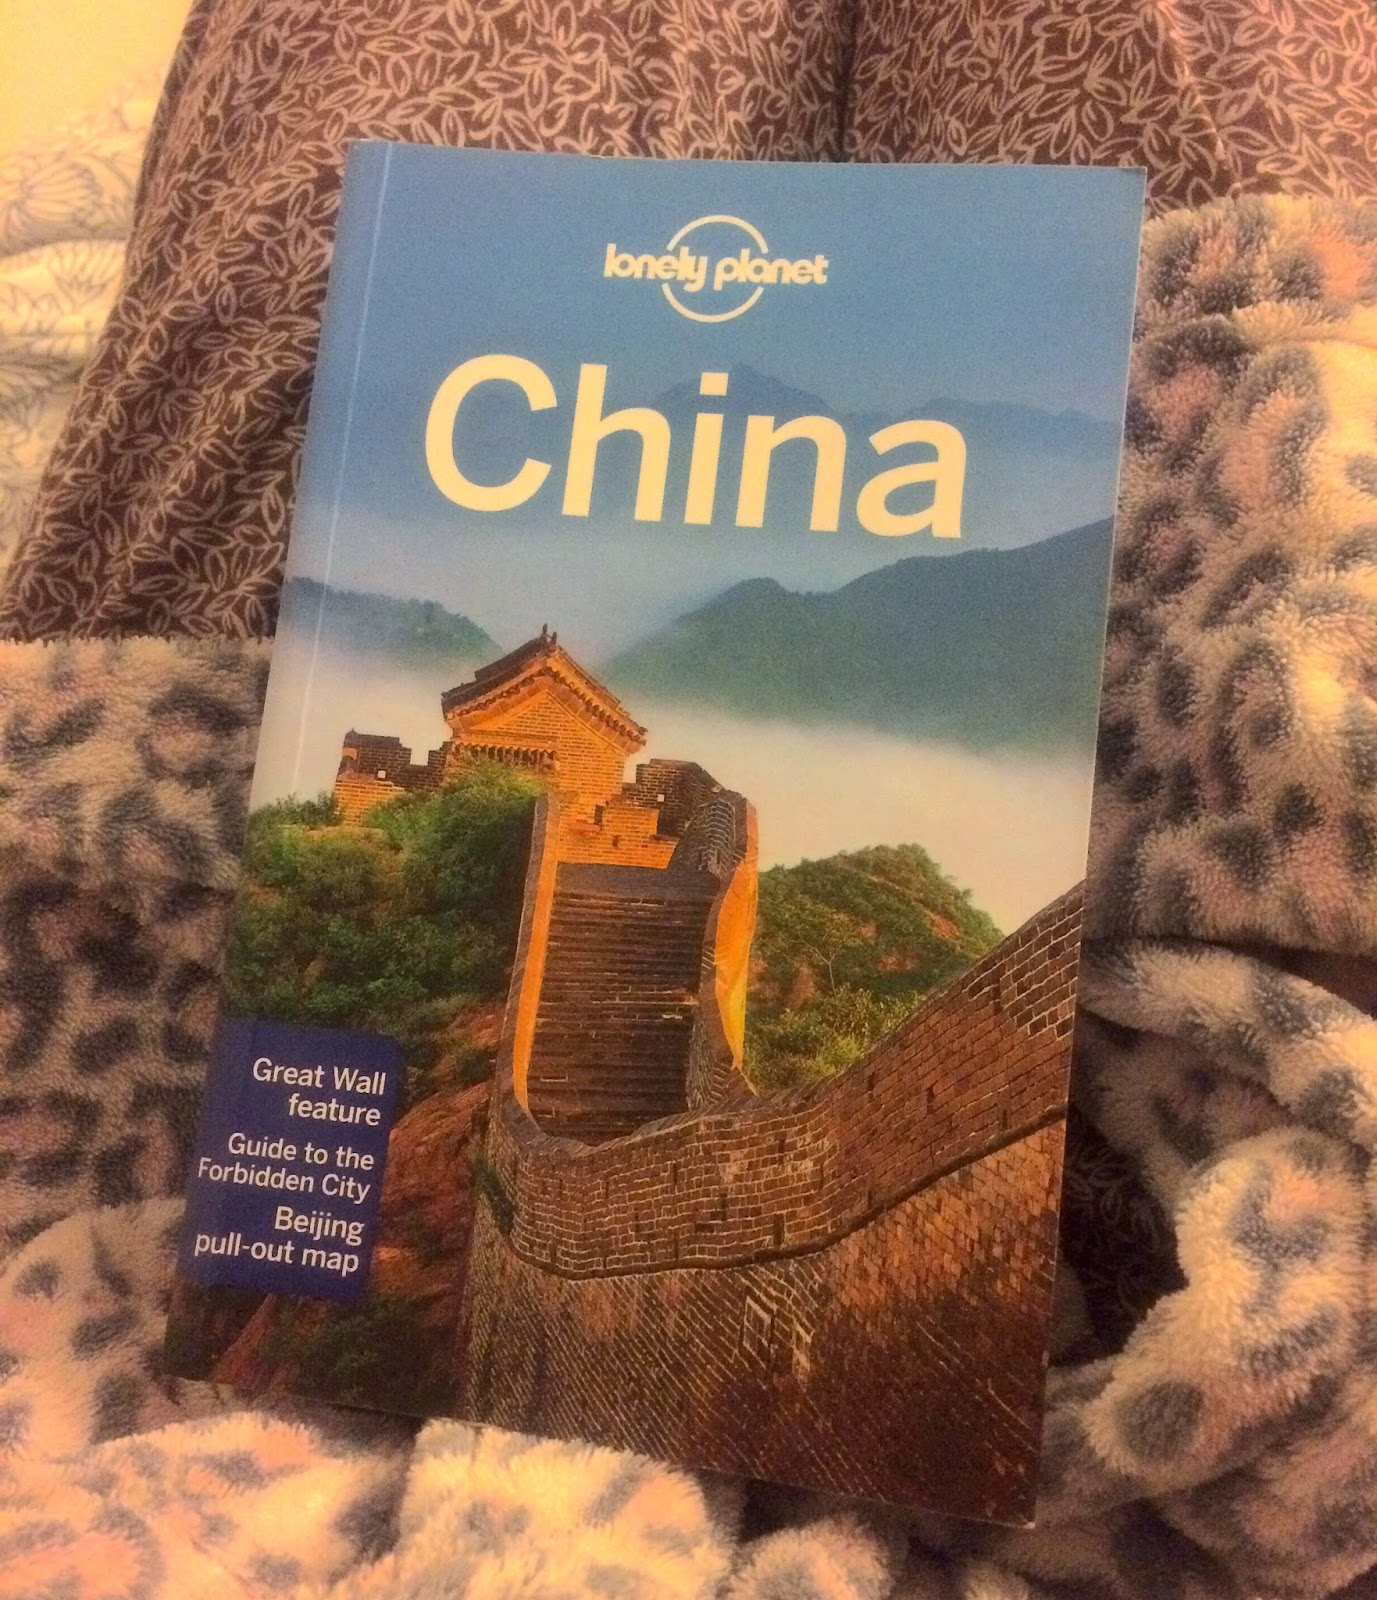 lonely planet china guide book